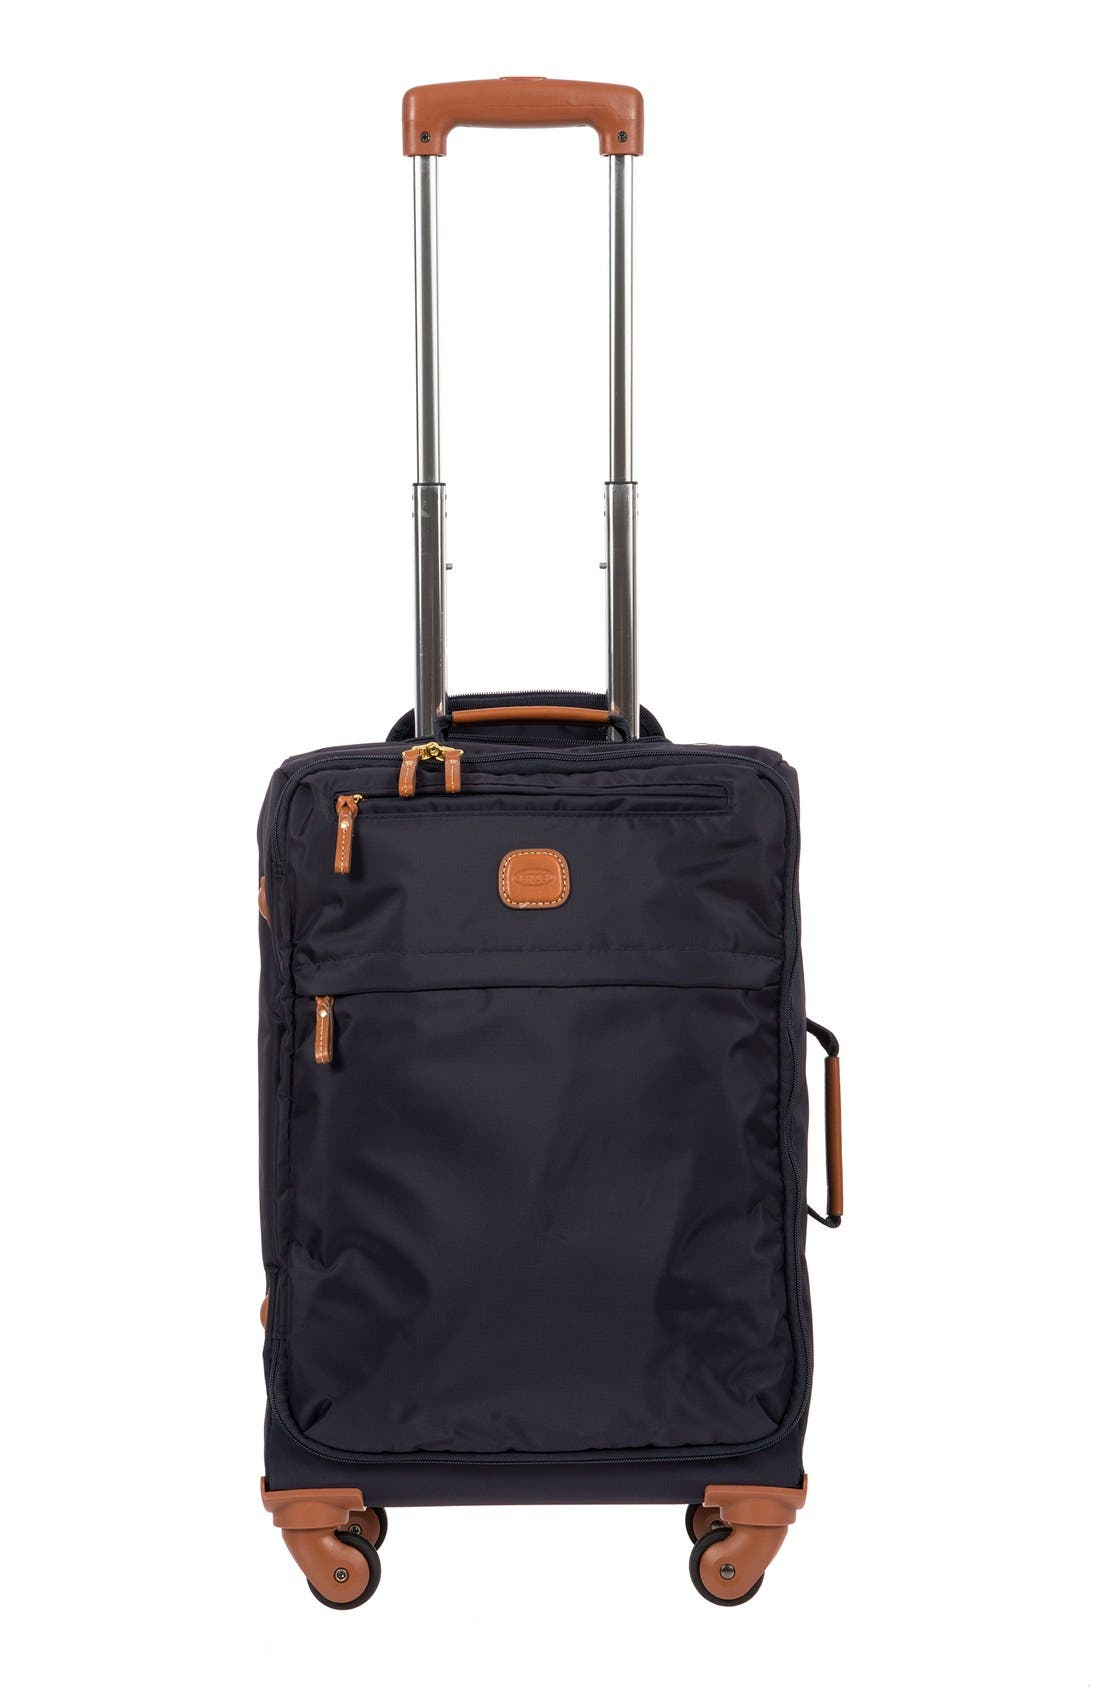 Bric's X-Bag 21 Inch Spinner Carry-On